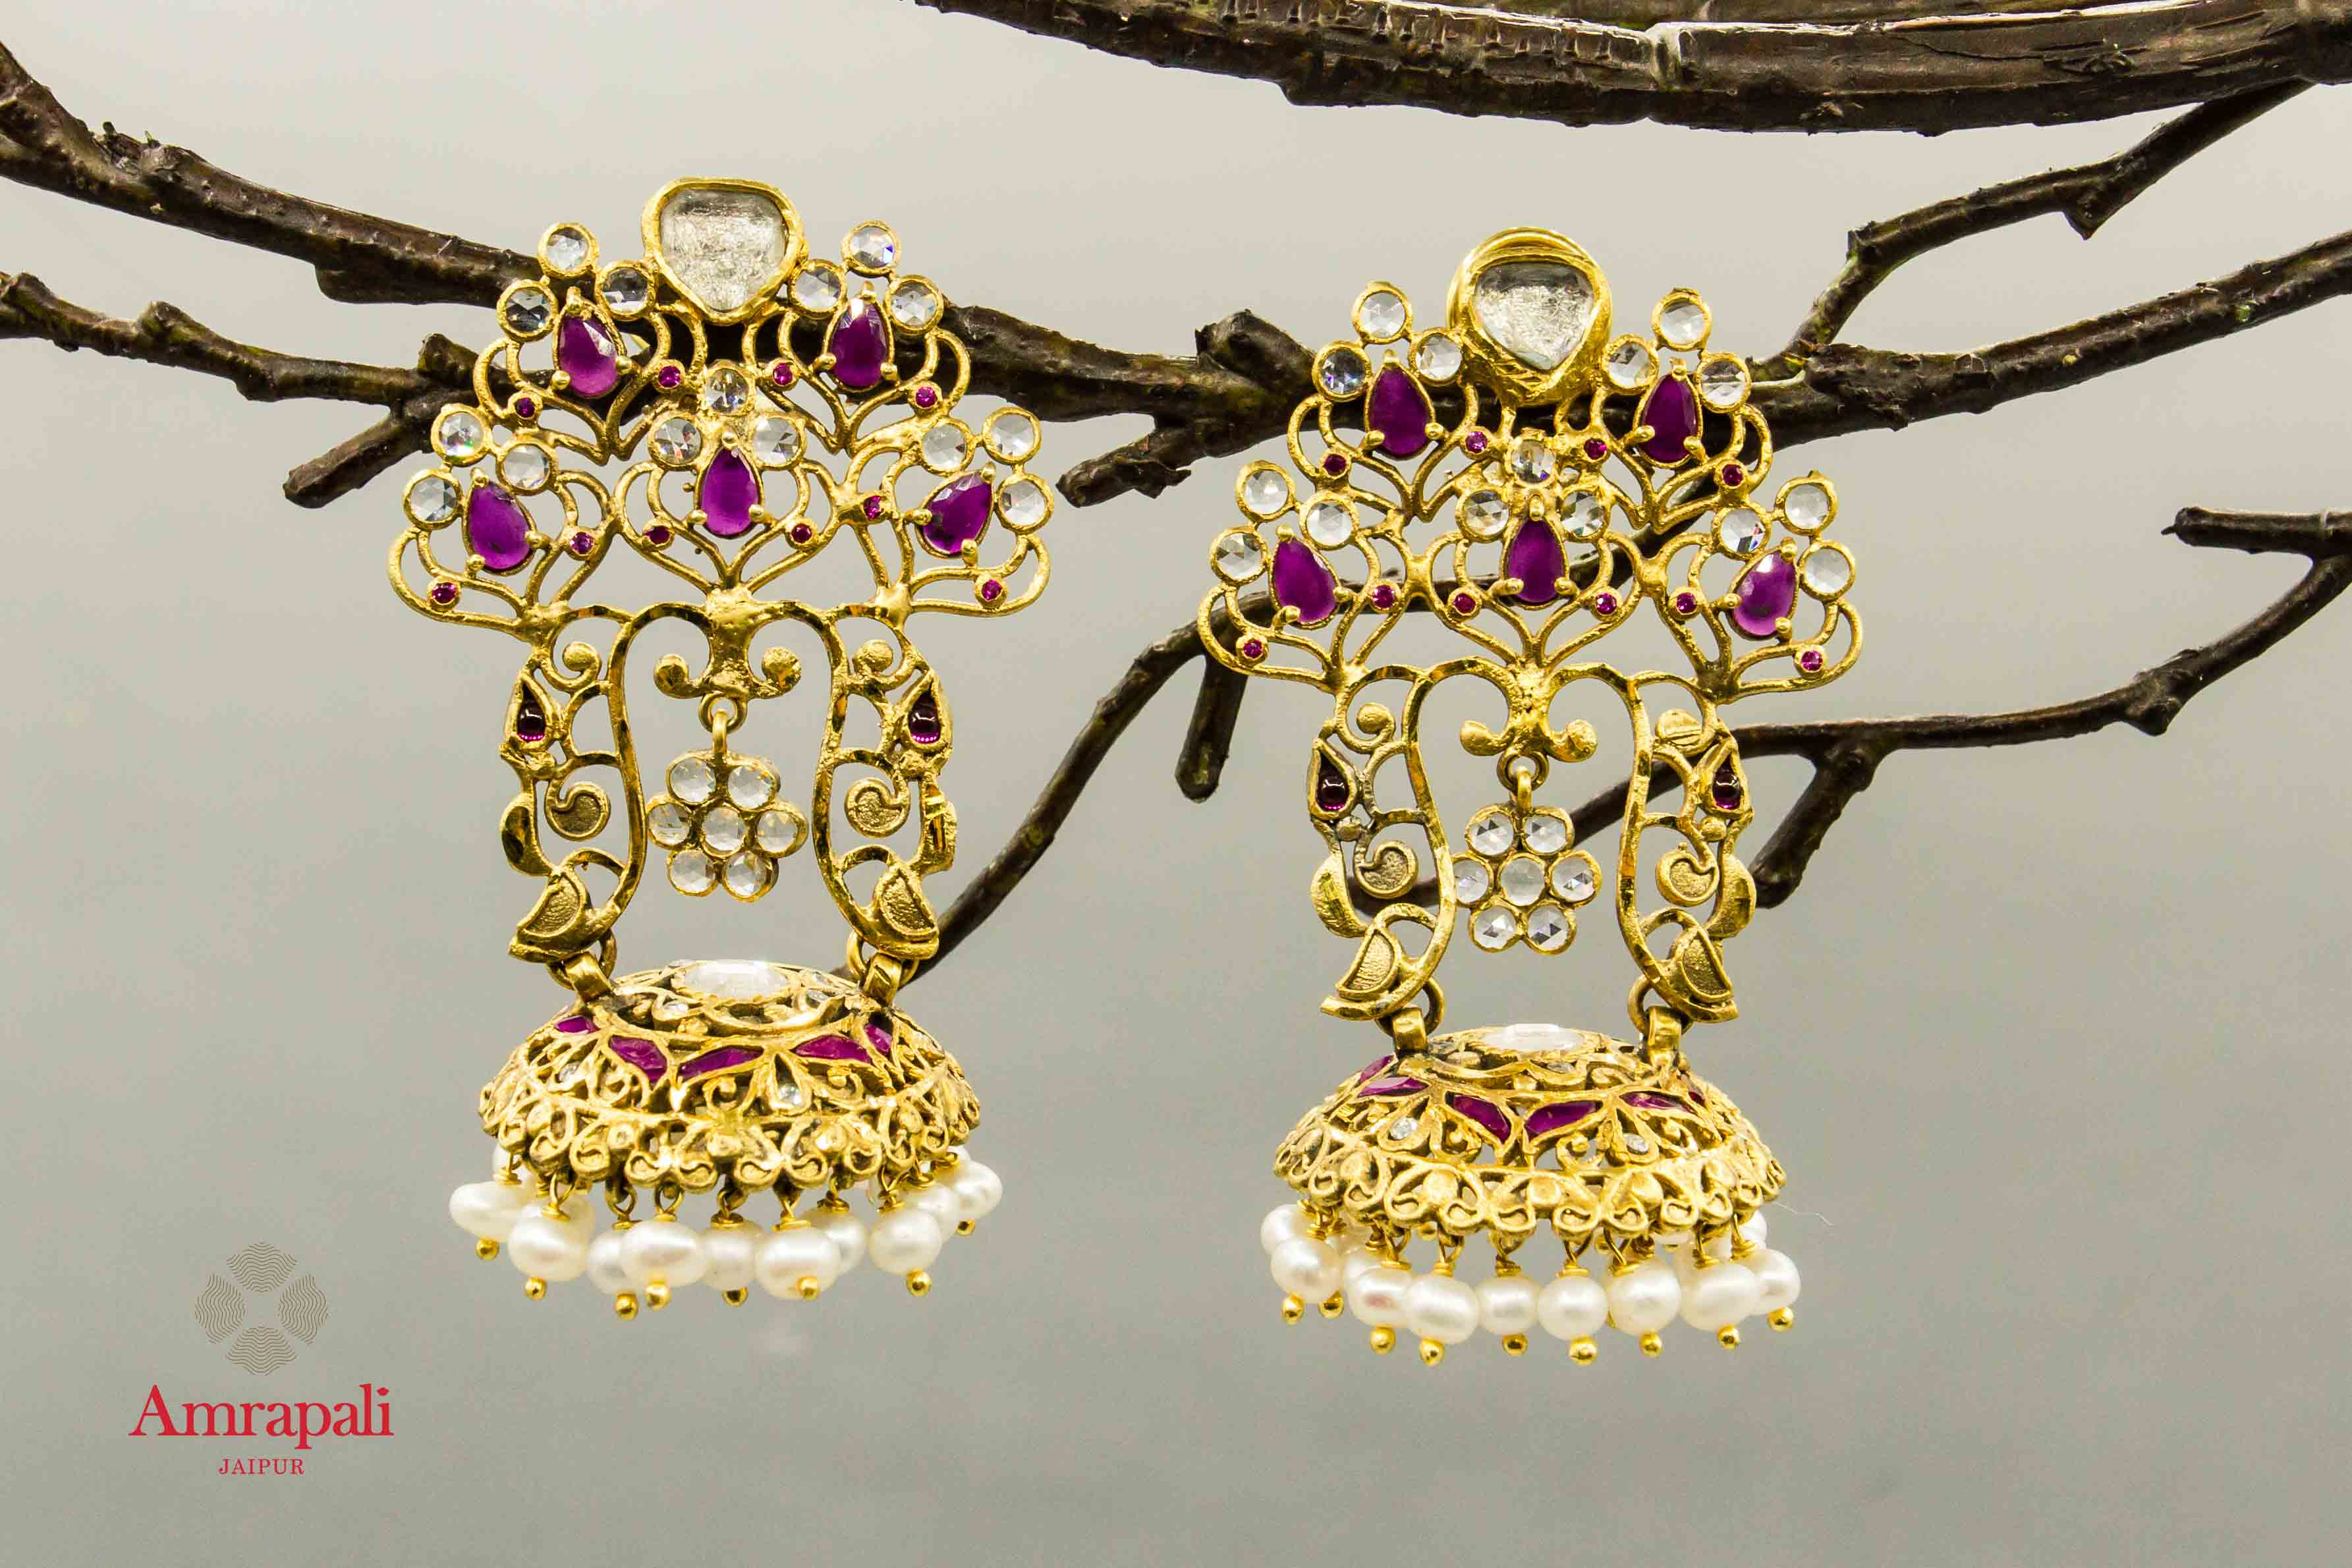 Buy Amrapali silver gold plated glass pearl filigree earrings online in USA with jhumki. Raise your traditional fashion quotient on special occasions with exquisite Indian jewelry from Pure Elegance Indian clothing store in USA. Enhance your look with silver gold plated jewellery, silver jewellery available online.-front